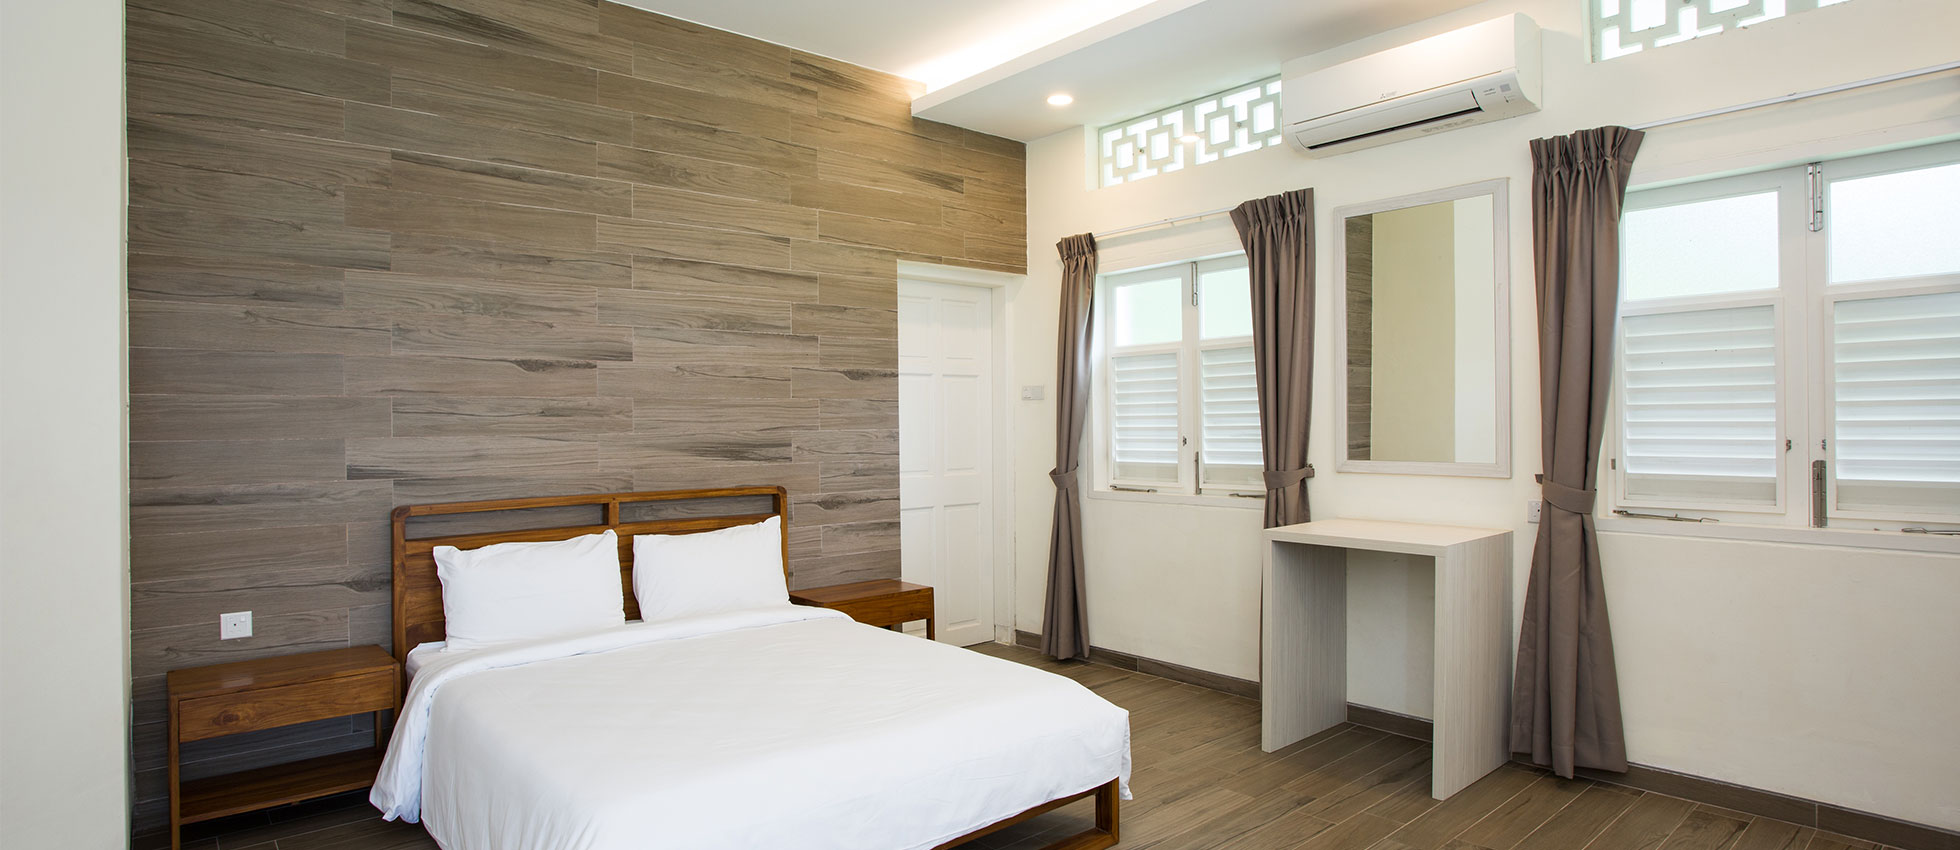 chalets in singapore - CSC Changi chalet bedroom